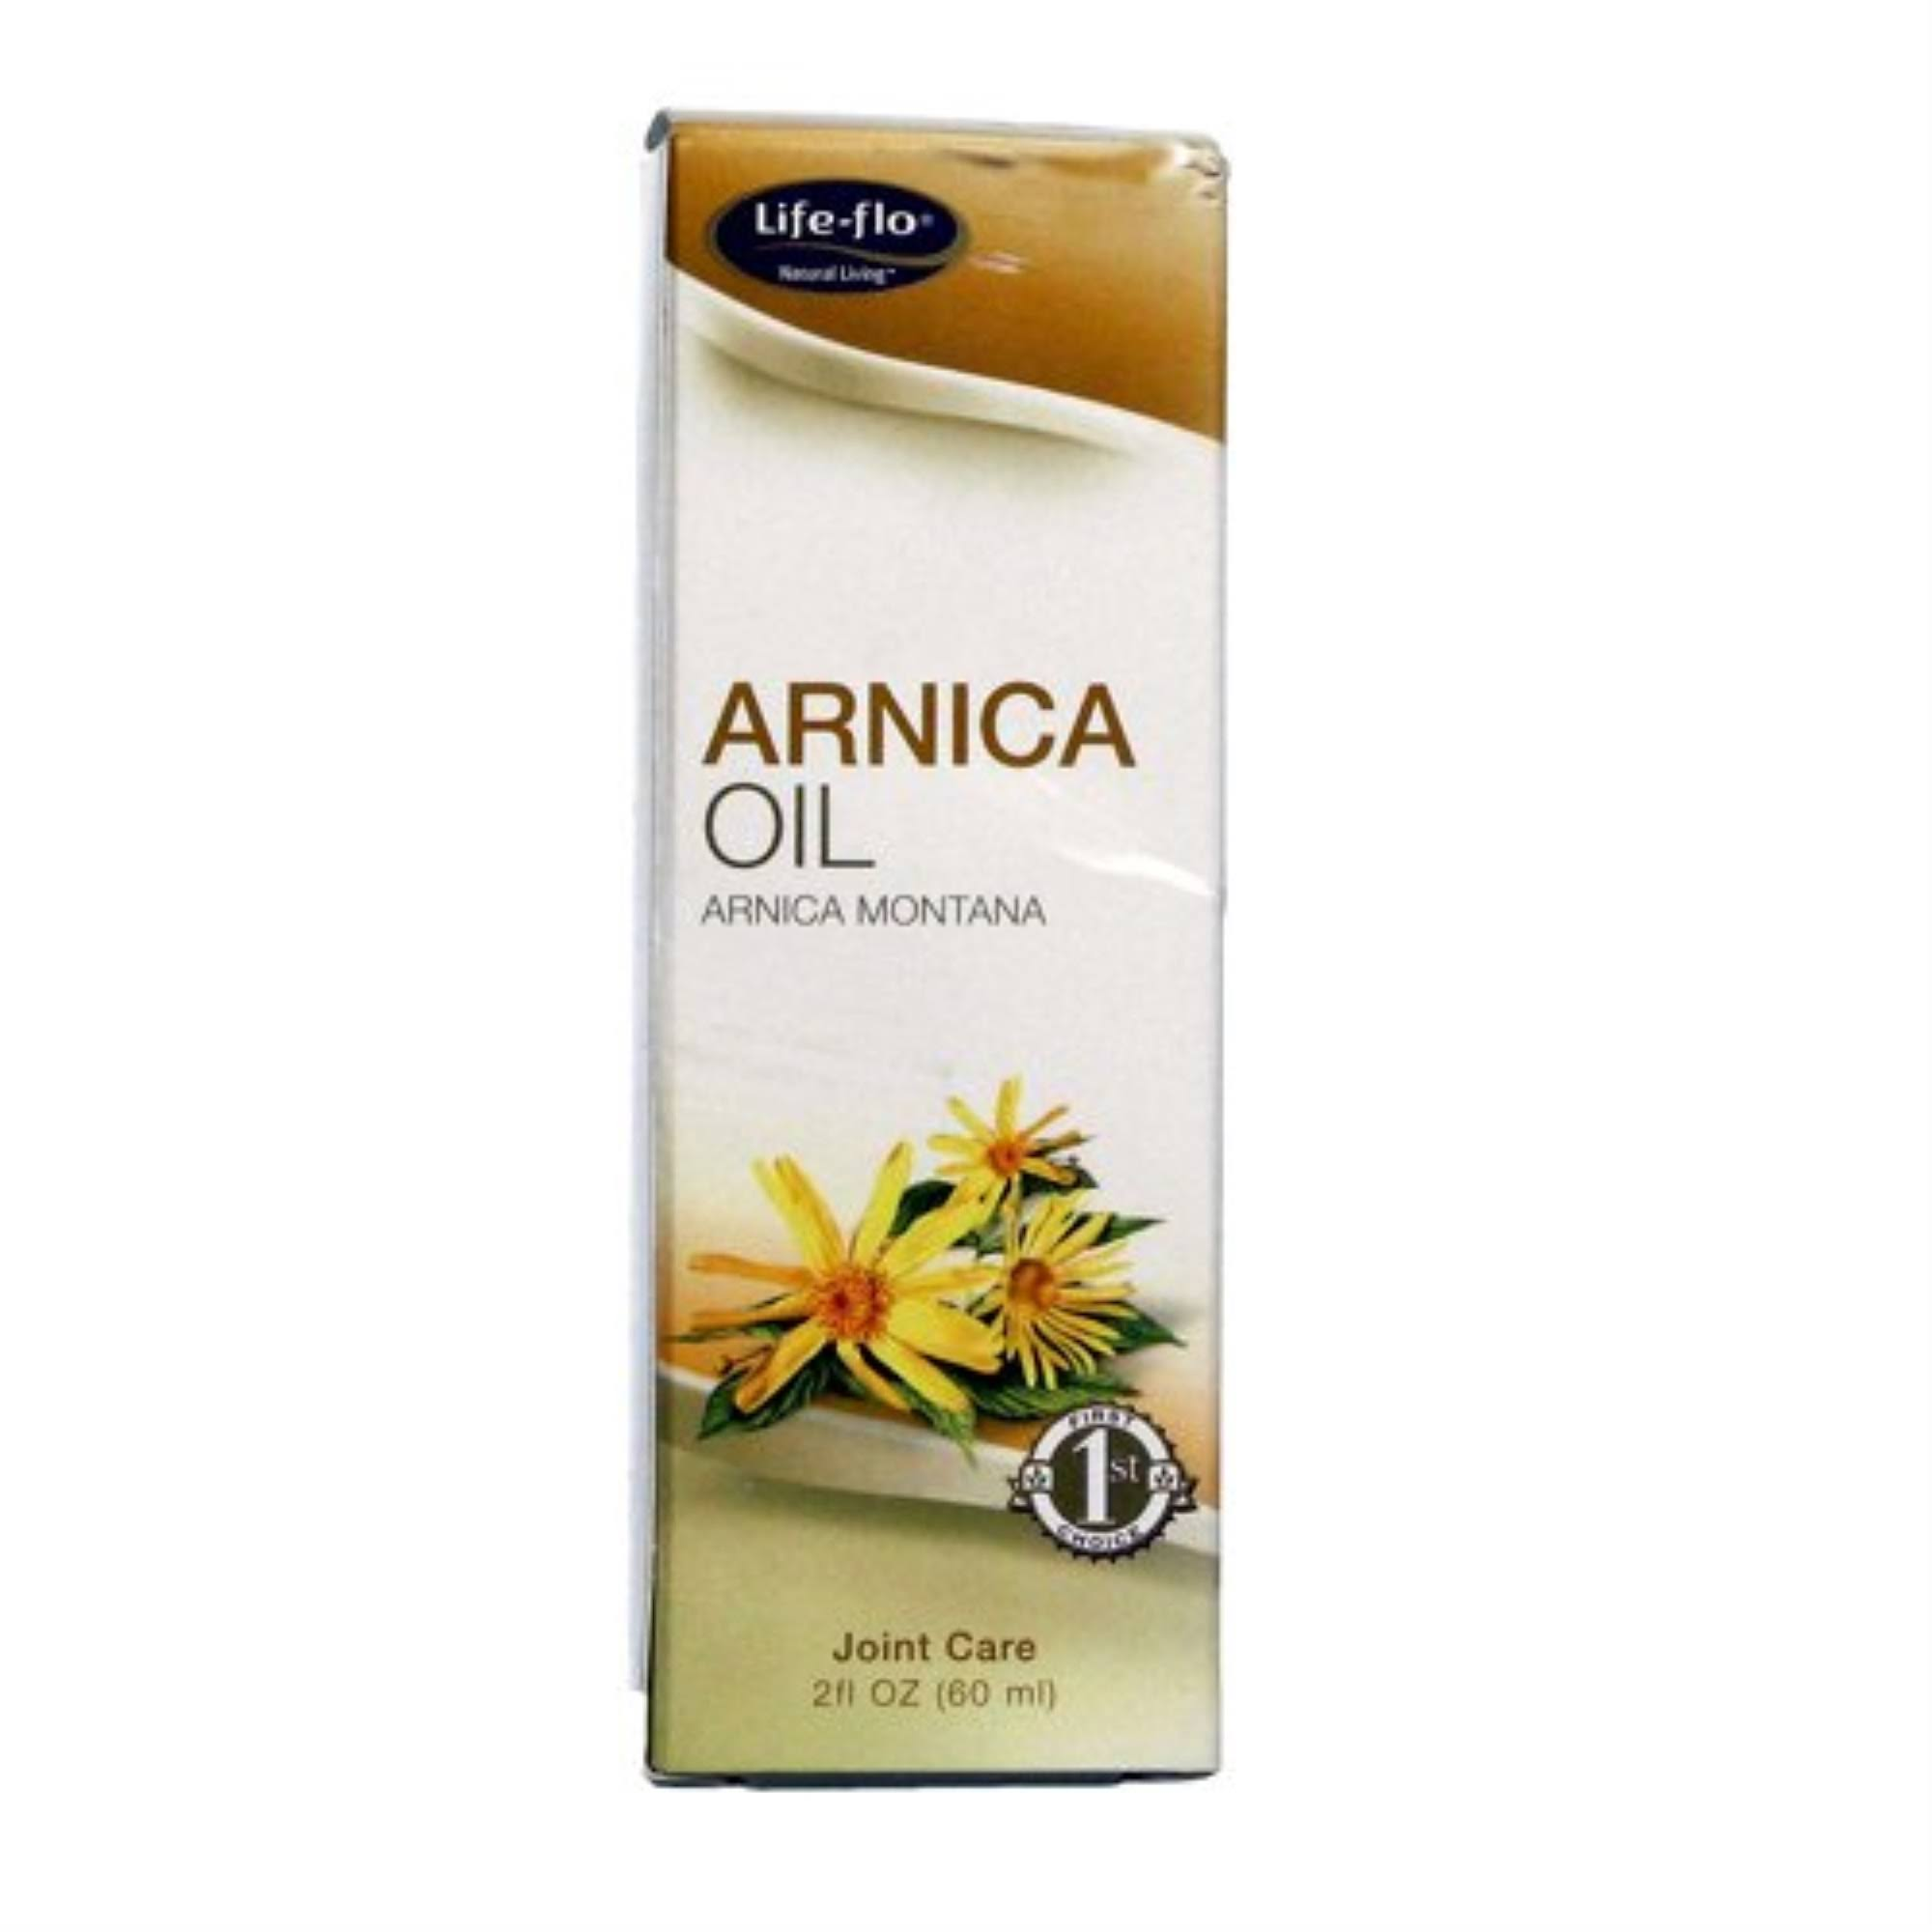 Life Flo Pure Oils Butters Arnica Oil - 60ml